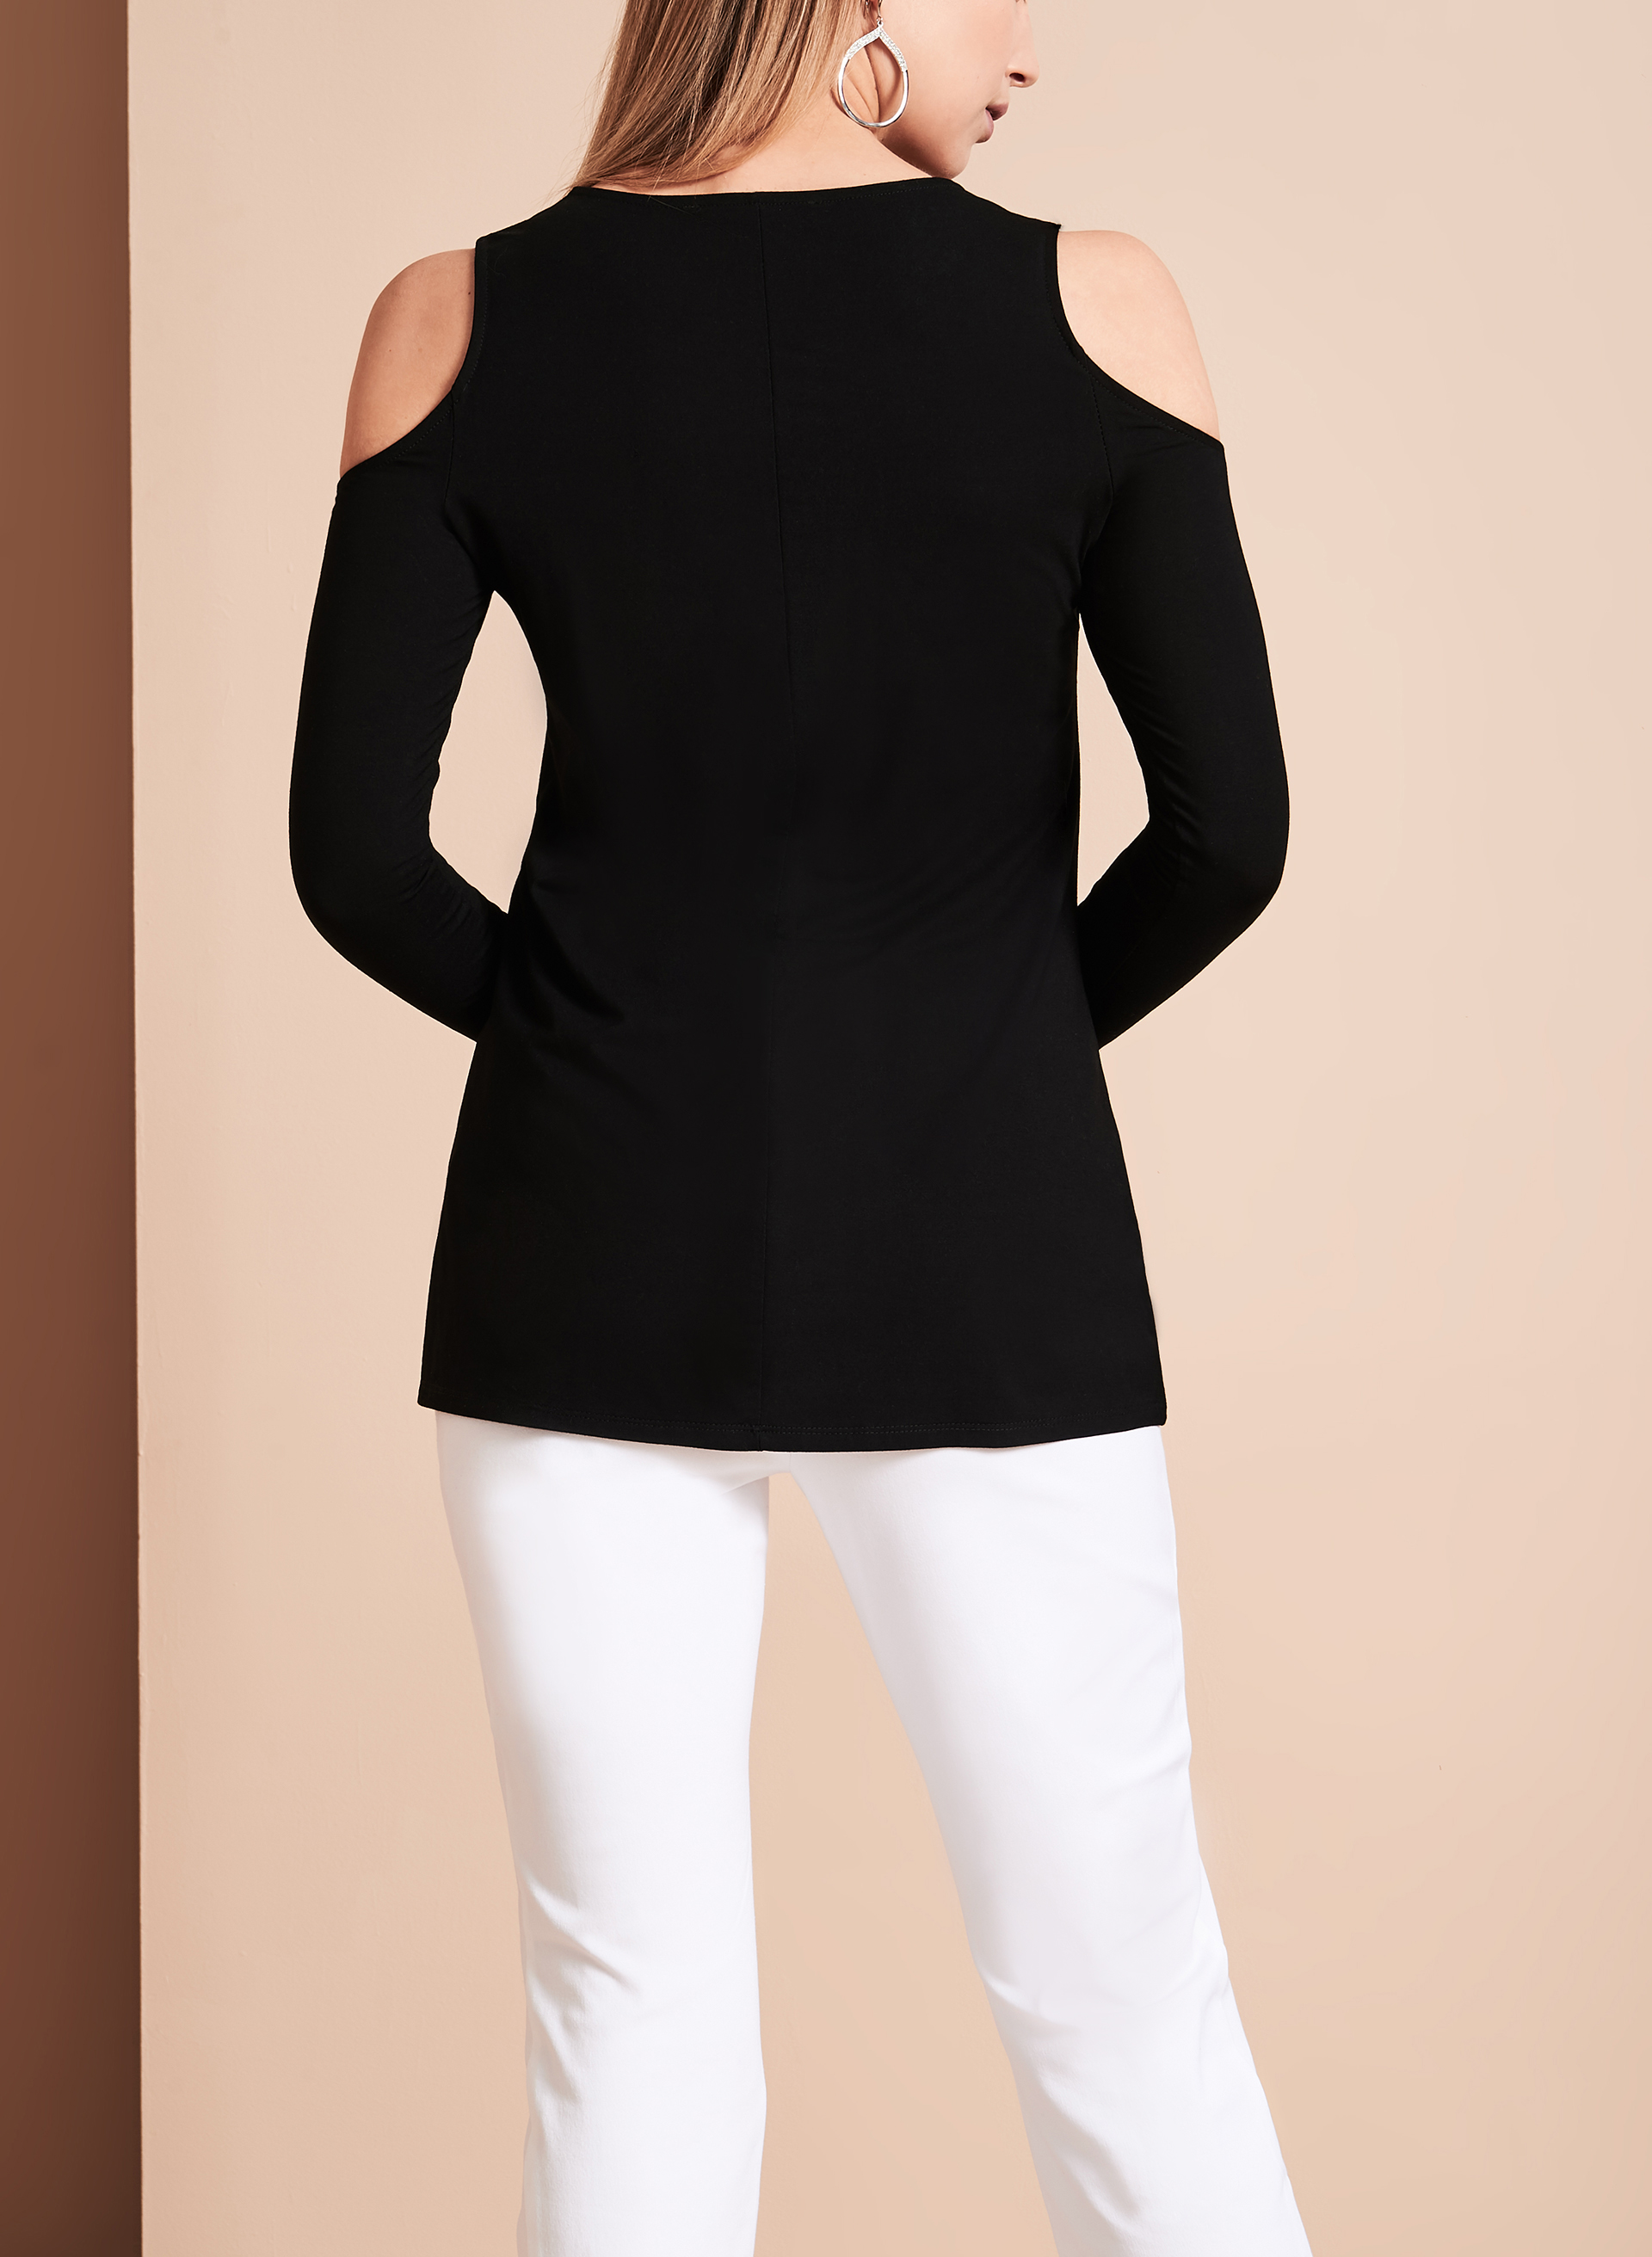 Long Sleeve Cold Shoulder Top, Black, hi-res